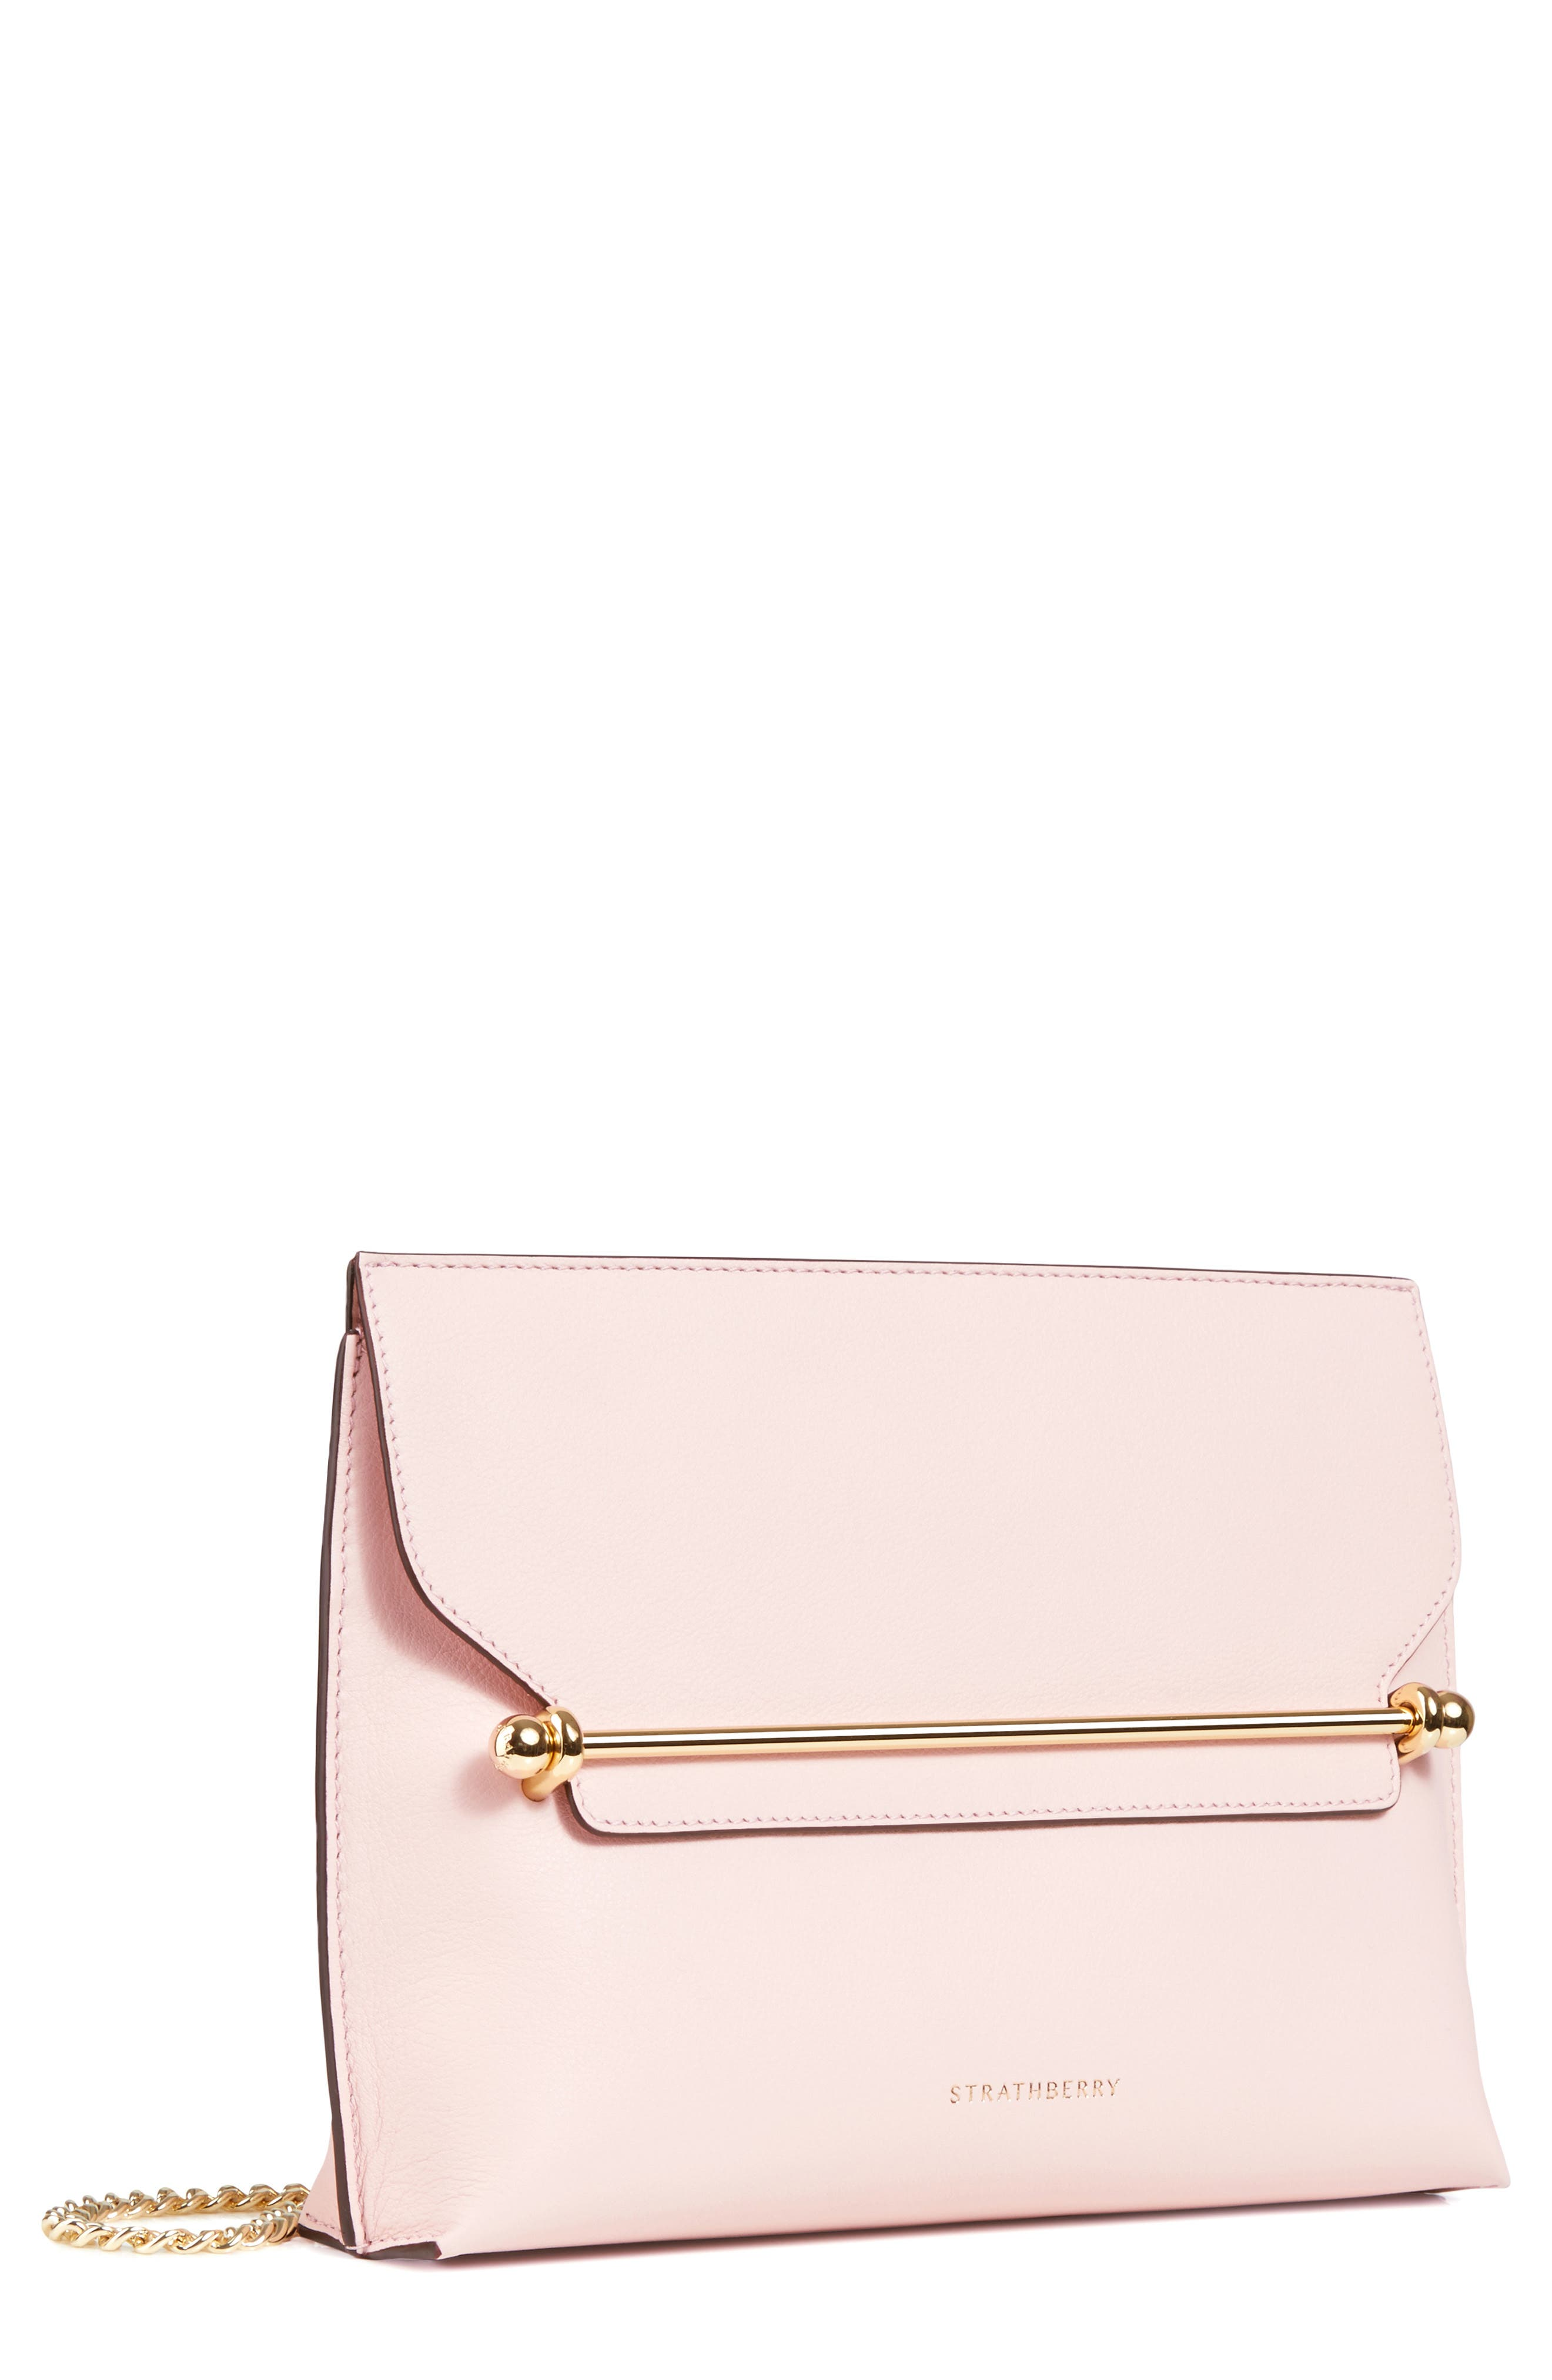 STRATHBERRY, East/West Stylist Leather Clutch, Main thumbnail 1, color, BABY PINK